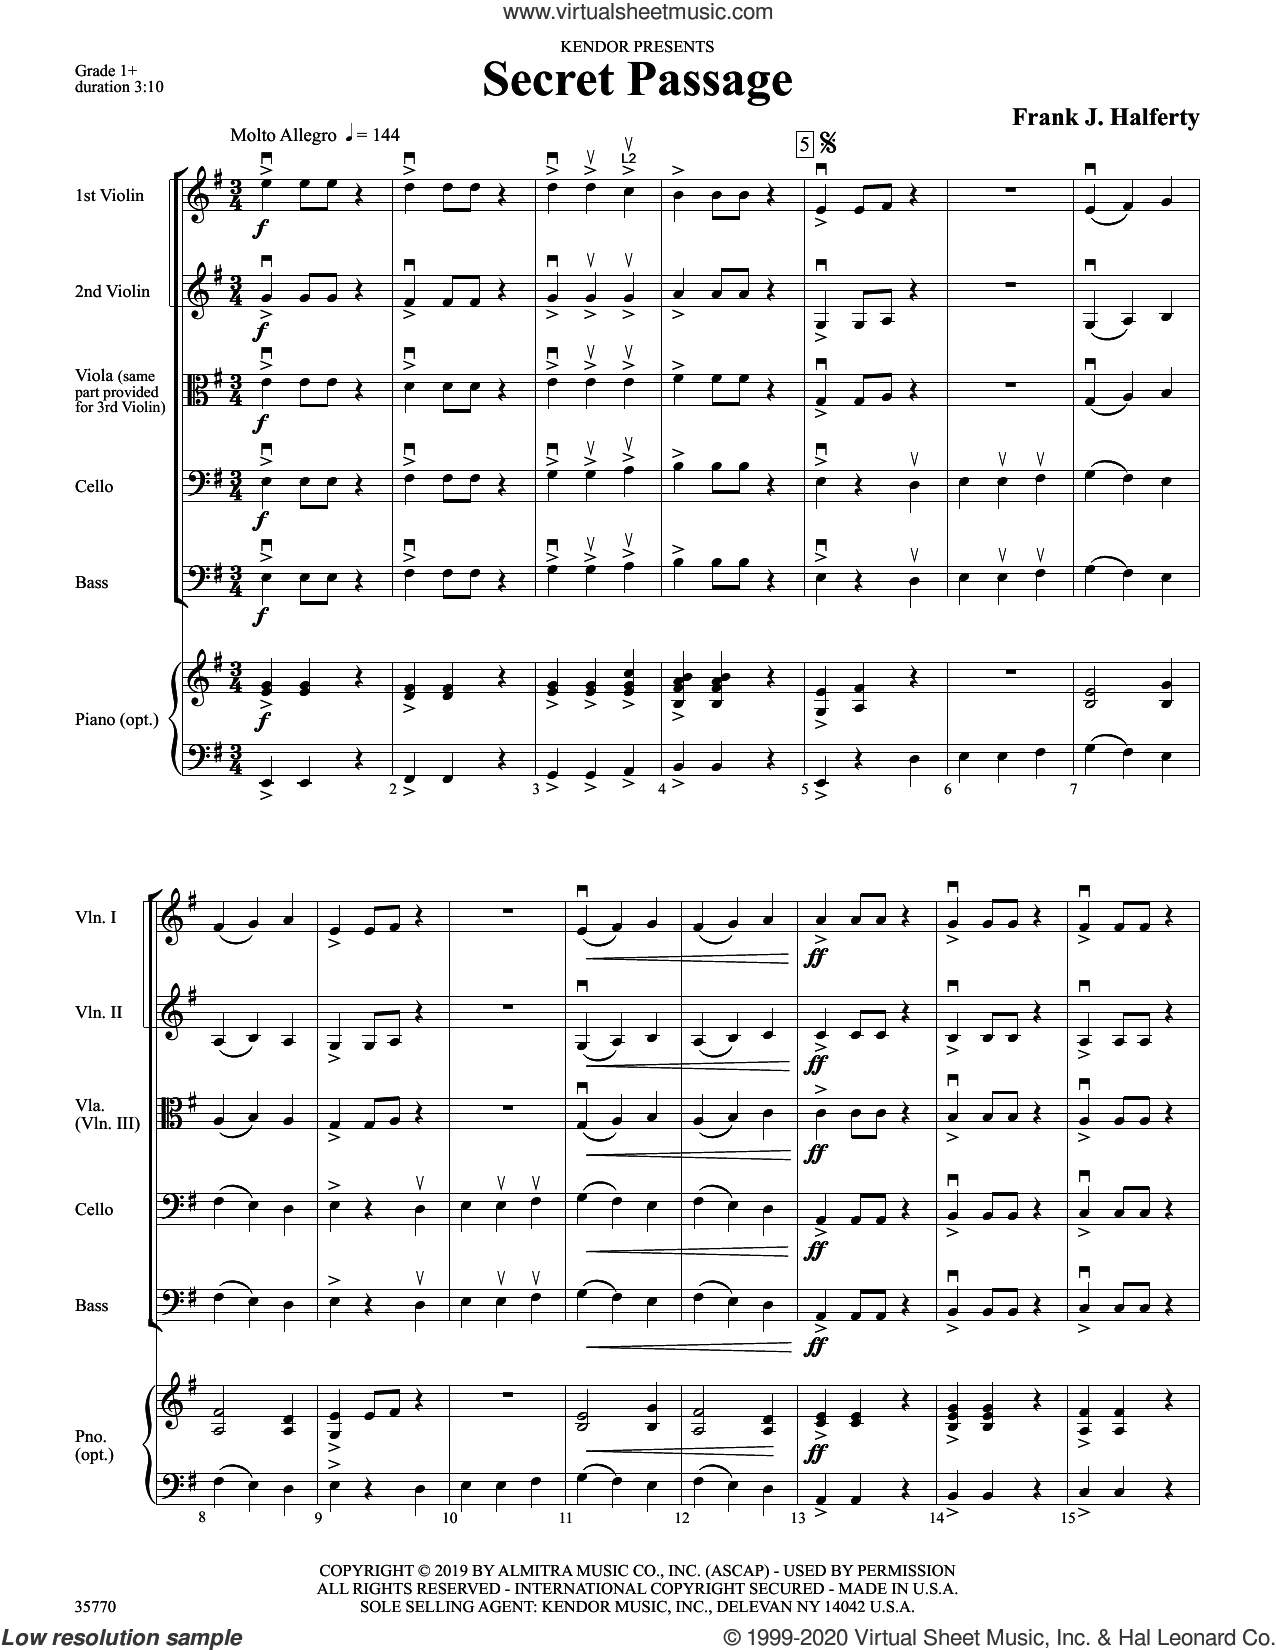 Secret Passage (COMPLETE) sheet music for orchestra by Frank J. Halferty, intermediate skill level